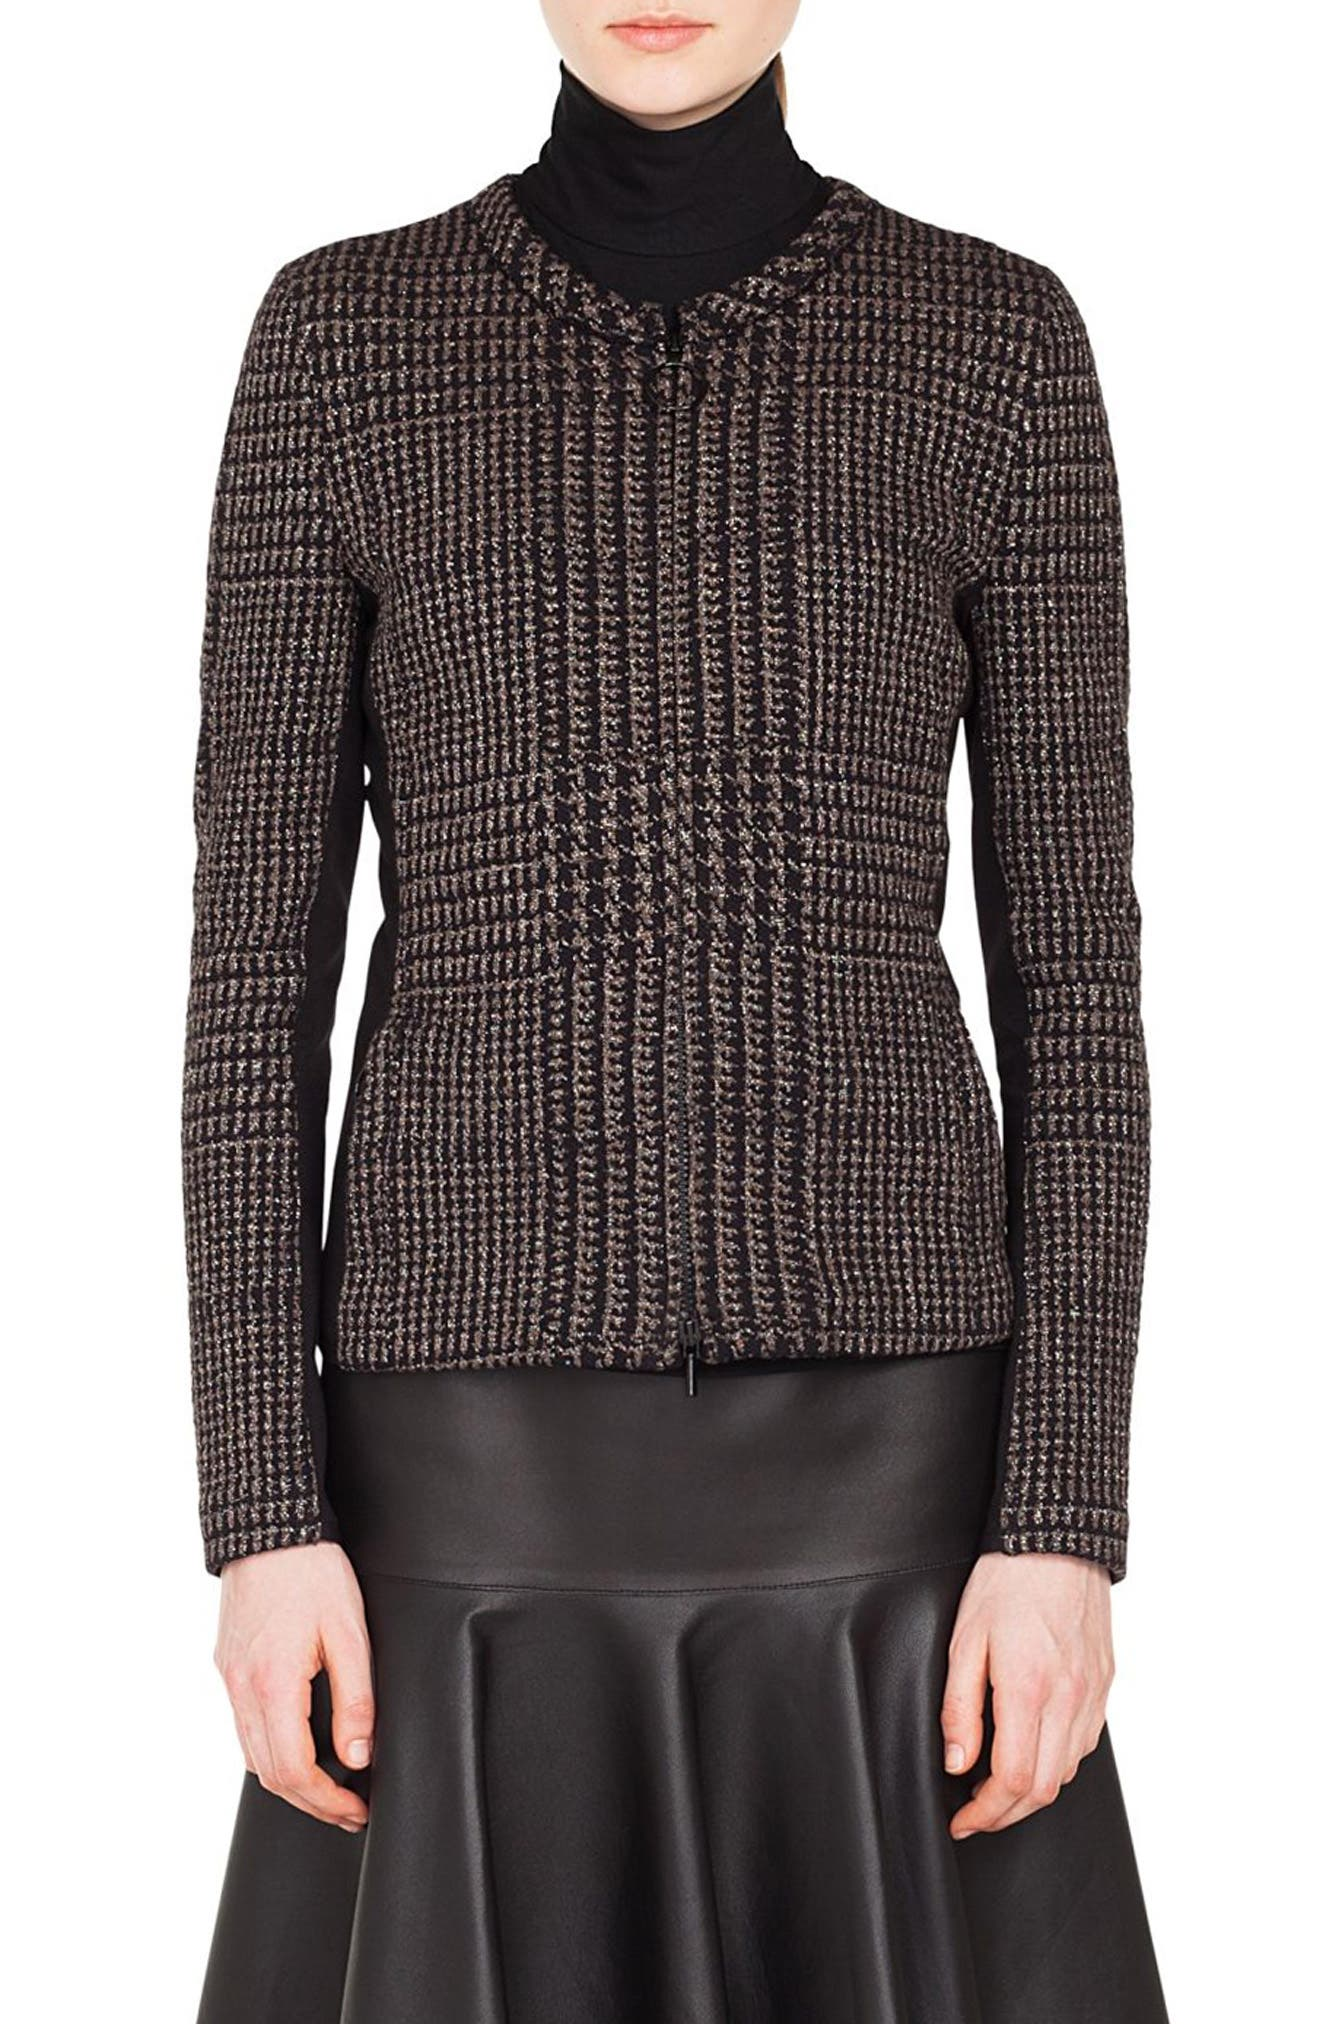 Metallic Houndstooth Jacquard Jacket,                         Main,                         color, BLACK/ TAUPE